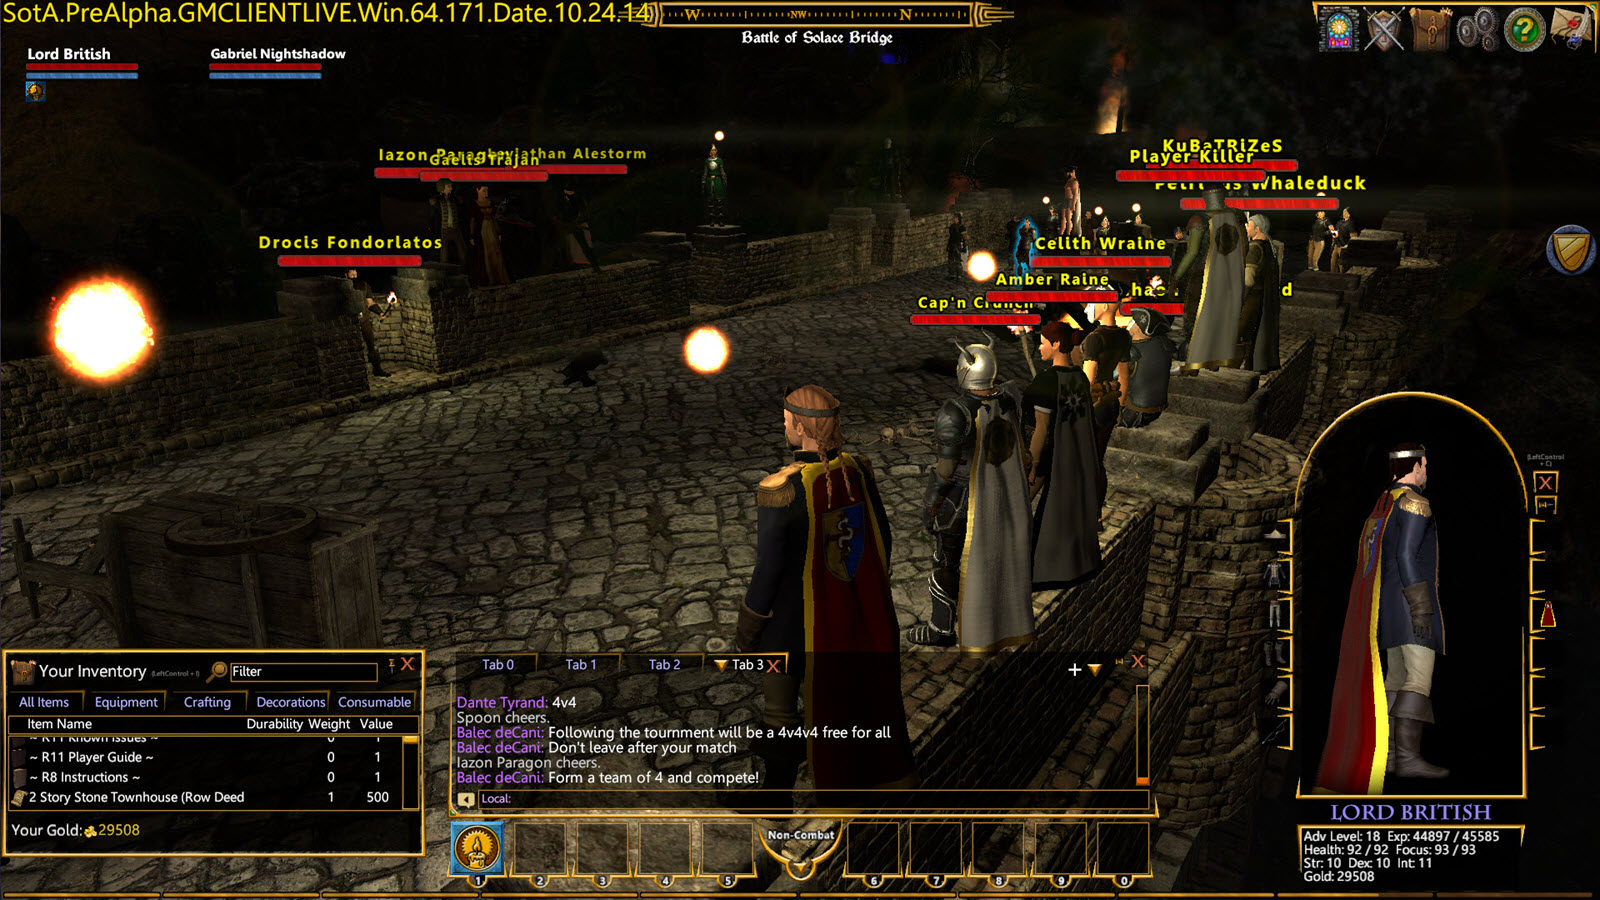 SotA_R11_Player_Screenshot7